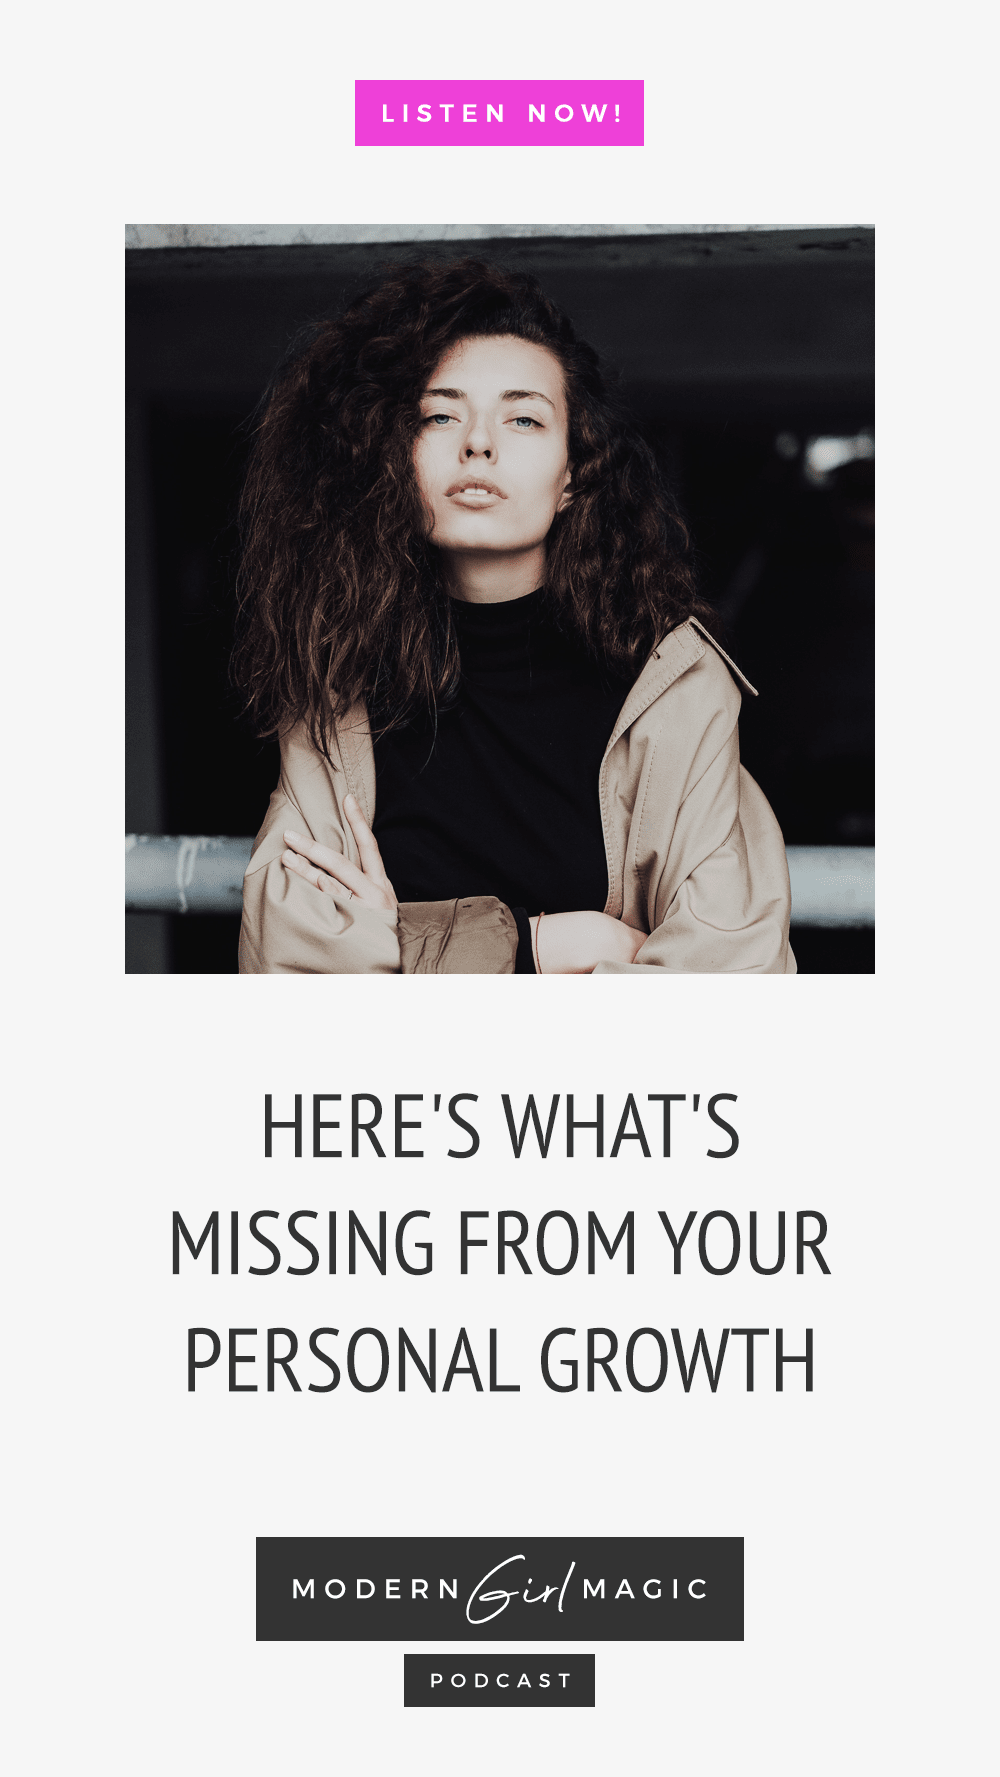 Modern Girl Magic Episode #19: Here's What's Missing From Your Personal Growth